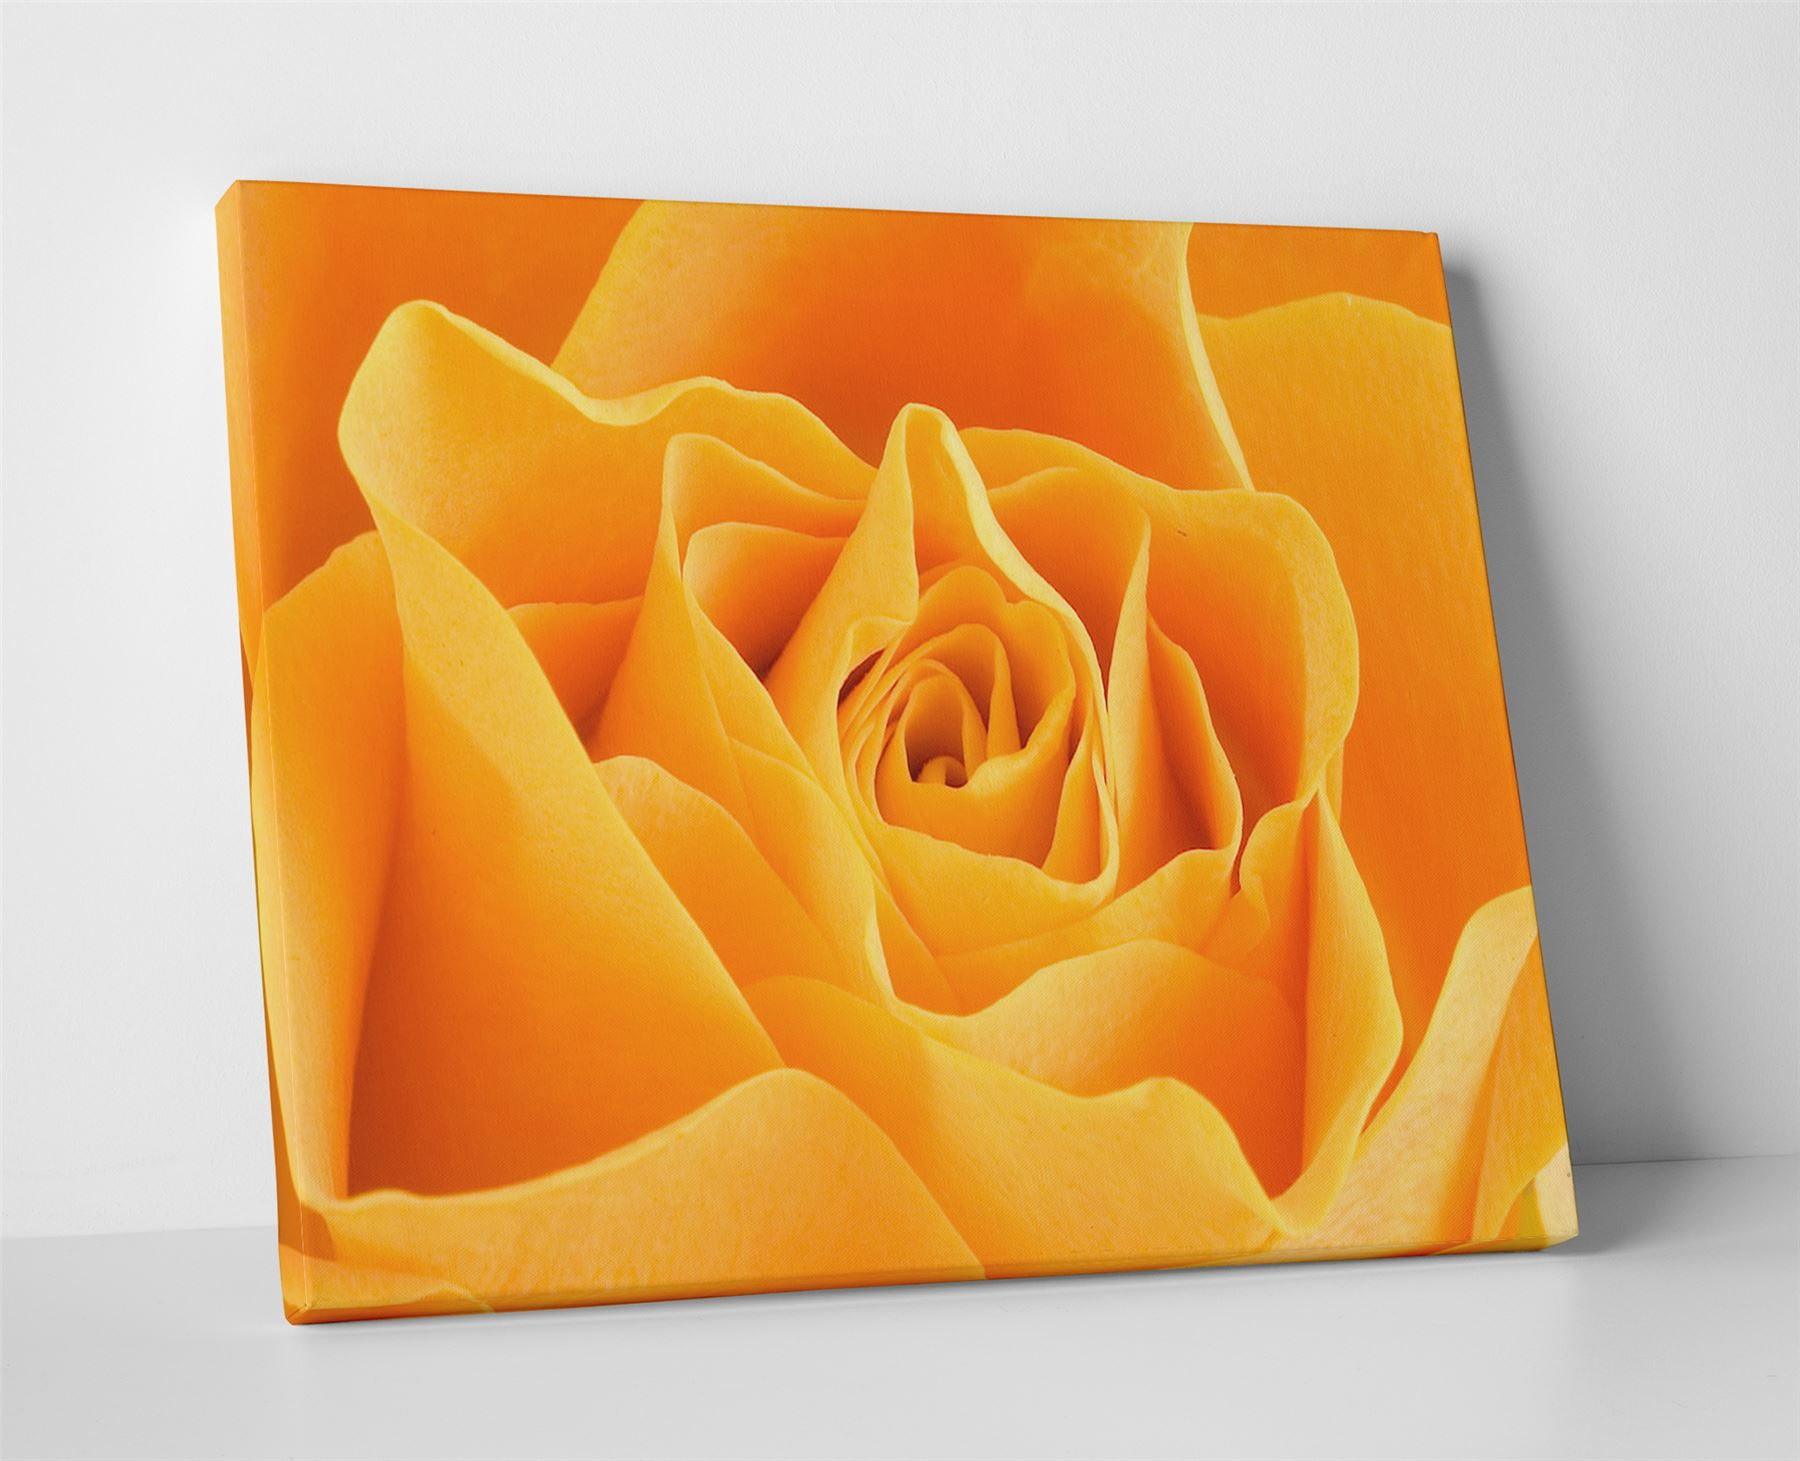 Yellow Rose Large Box Canvas Print Wall Art - Floral Roses Flower | eBay